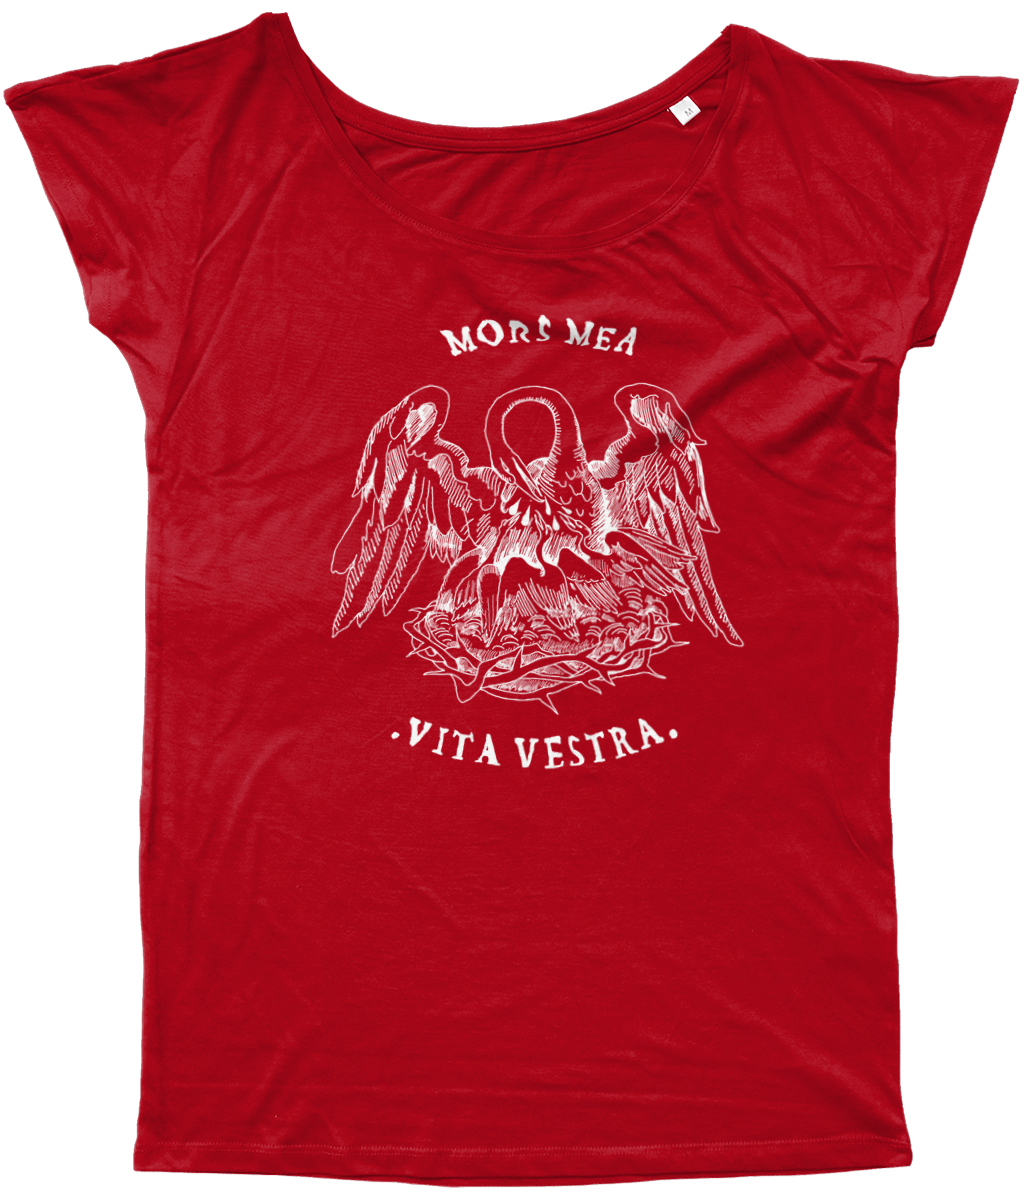 Women's Long T-Shirt - PELICAN (w)